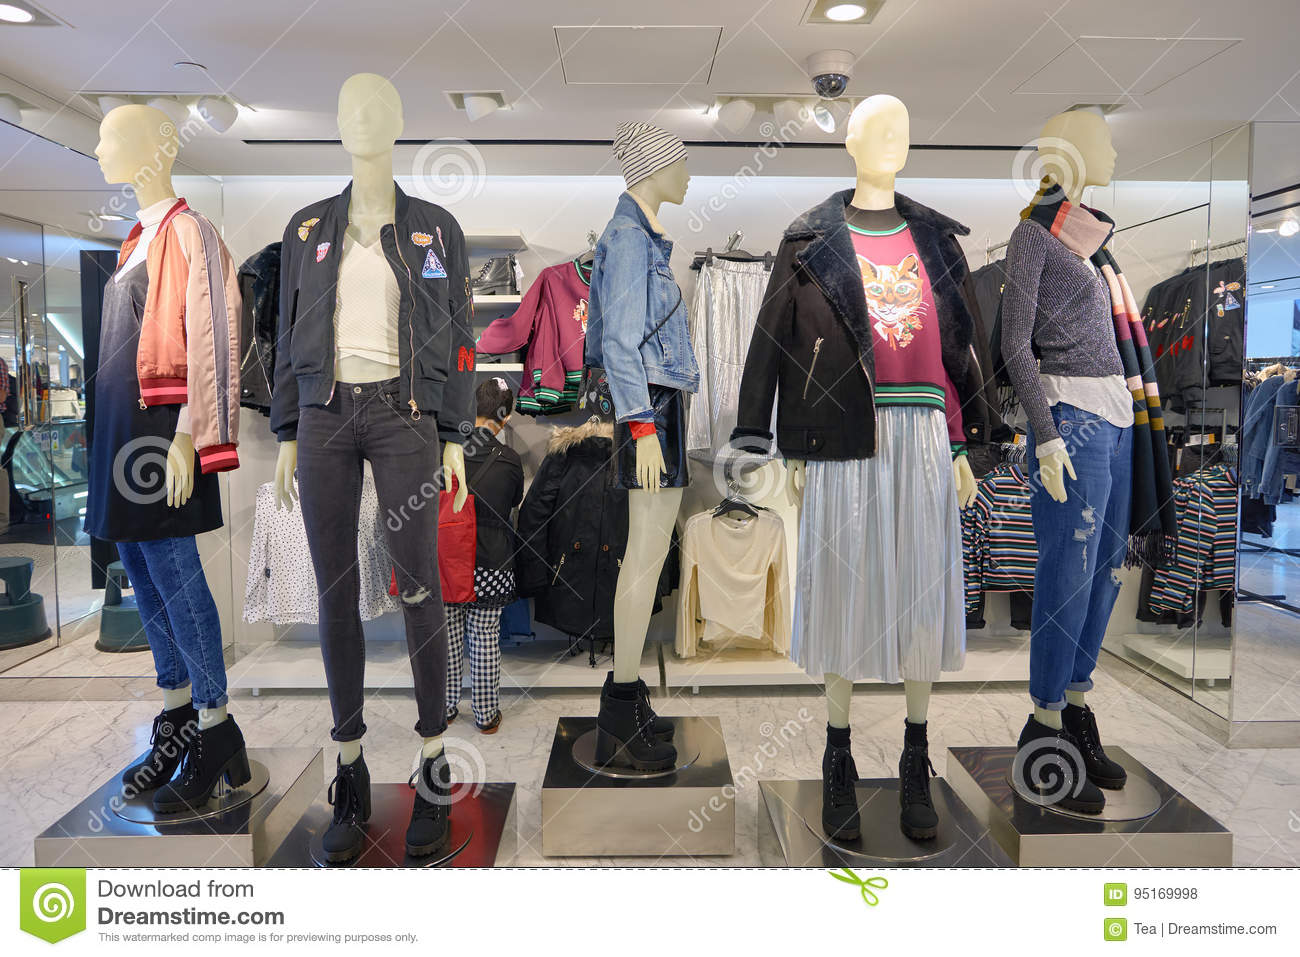 eb05e0396a0 H   M store editorial stock photo. Image of clothes